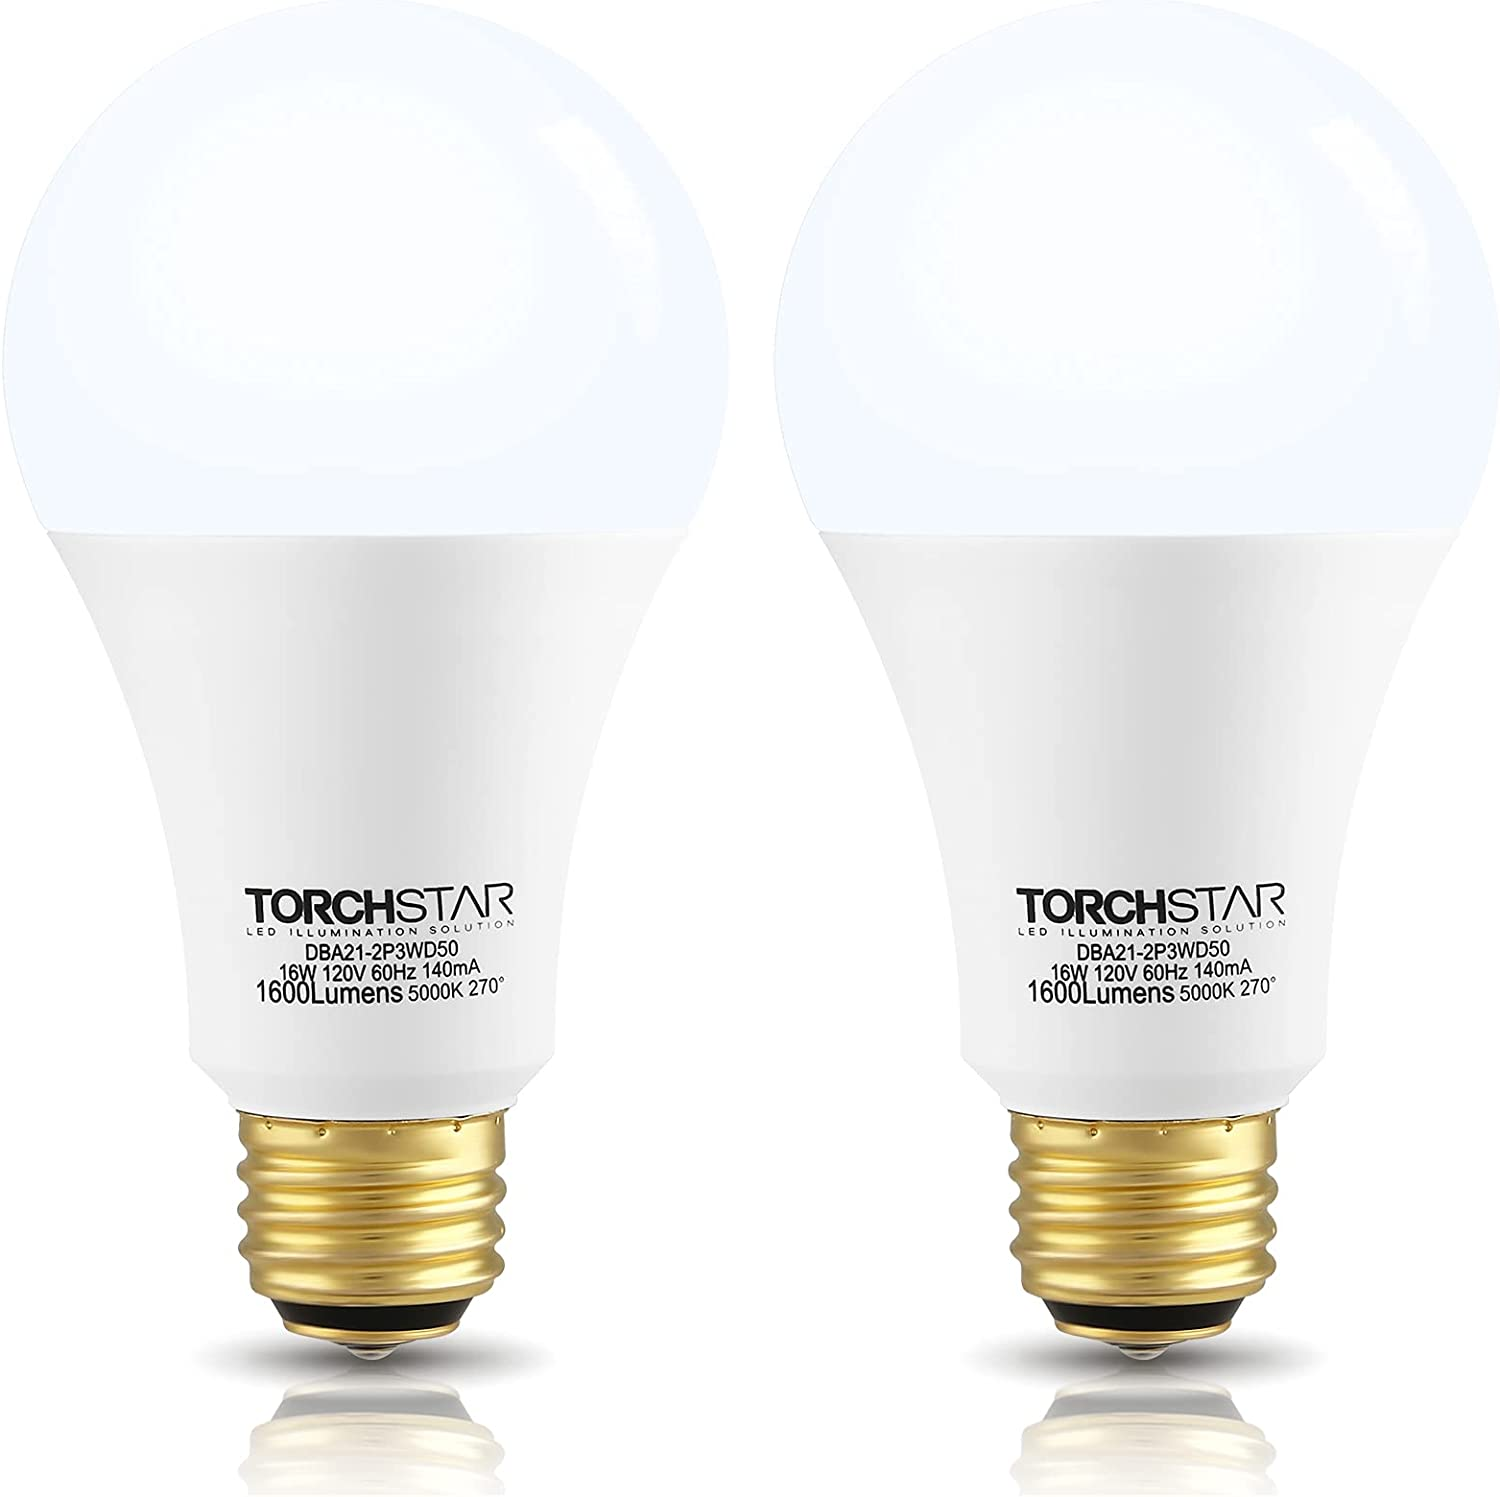 TORCHSTAR LED 3-Way Light Bulb Award-winning store A21 UL-Listed Excellent 500 Star Energy